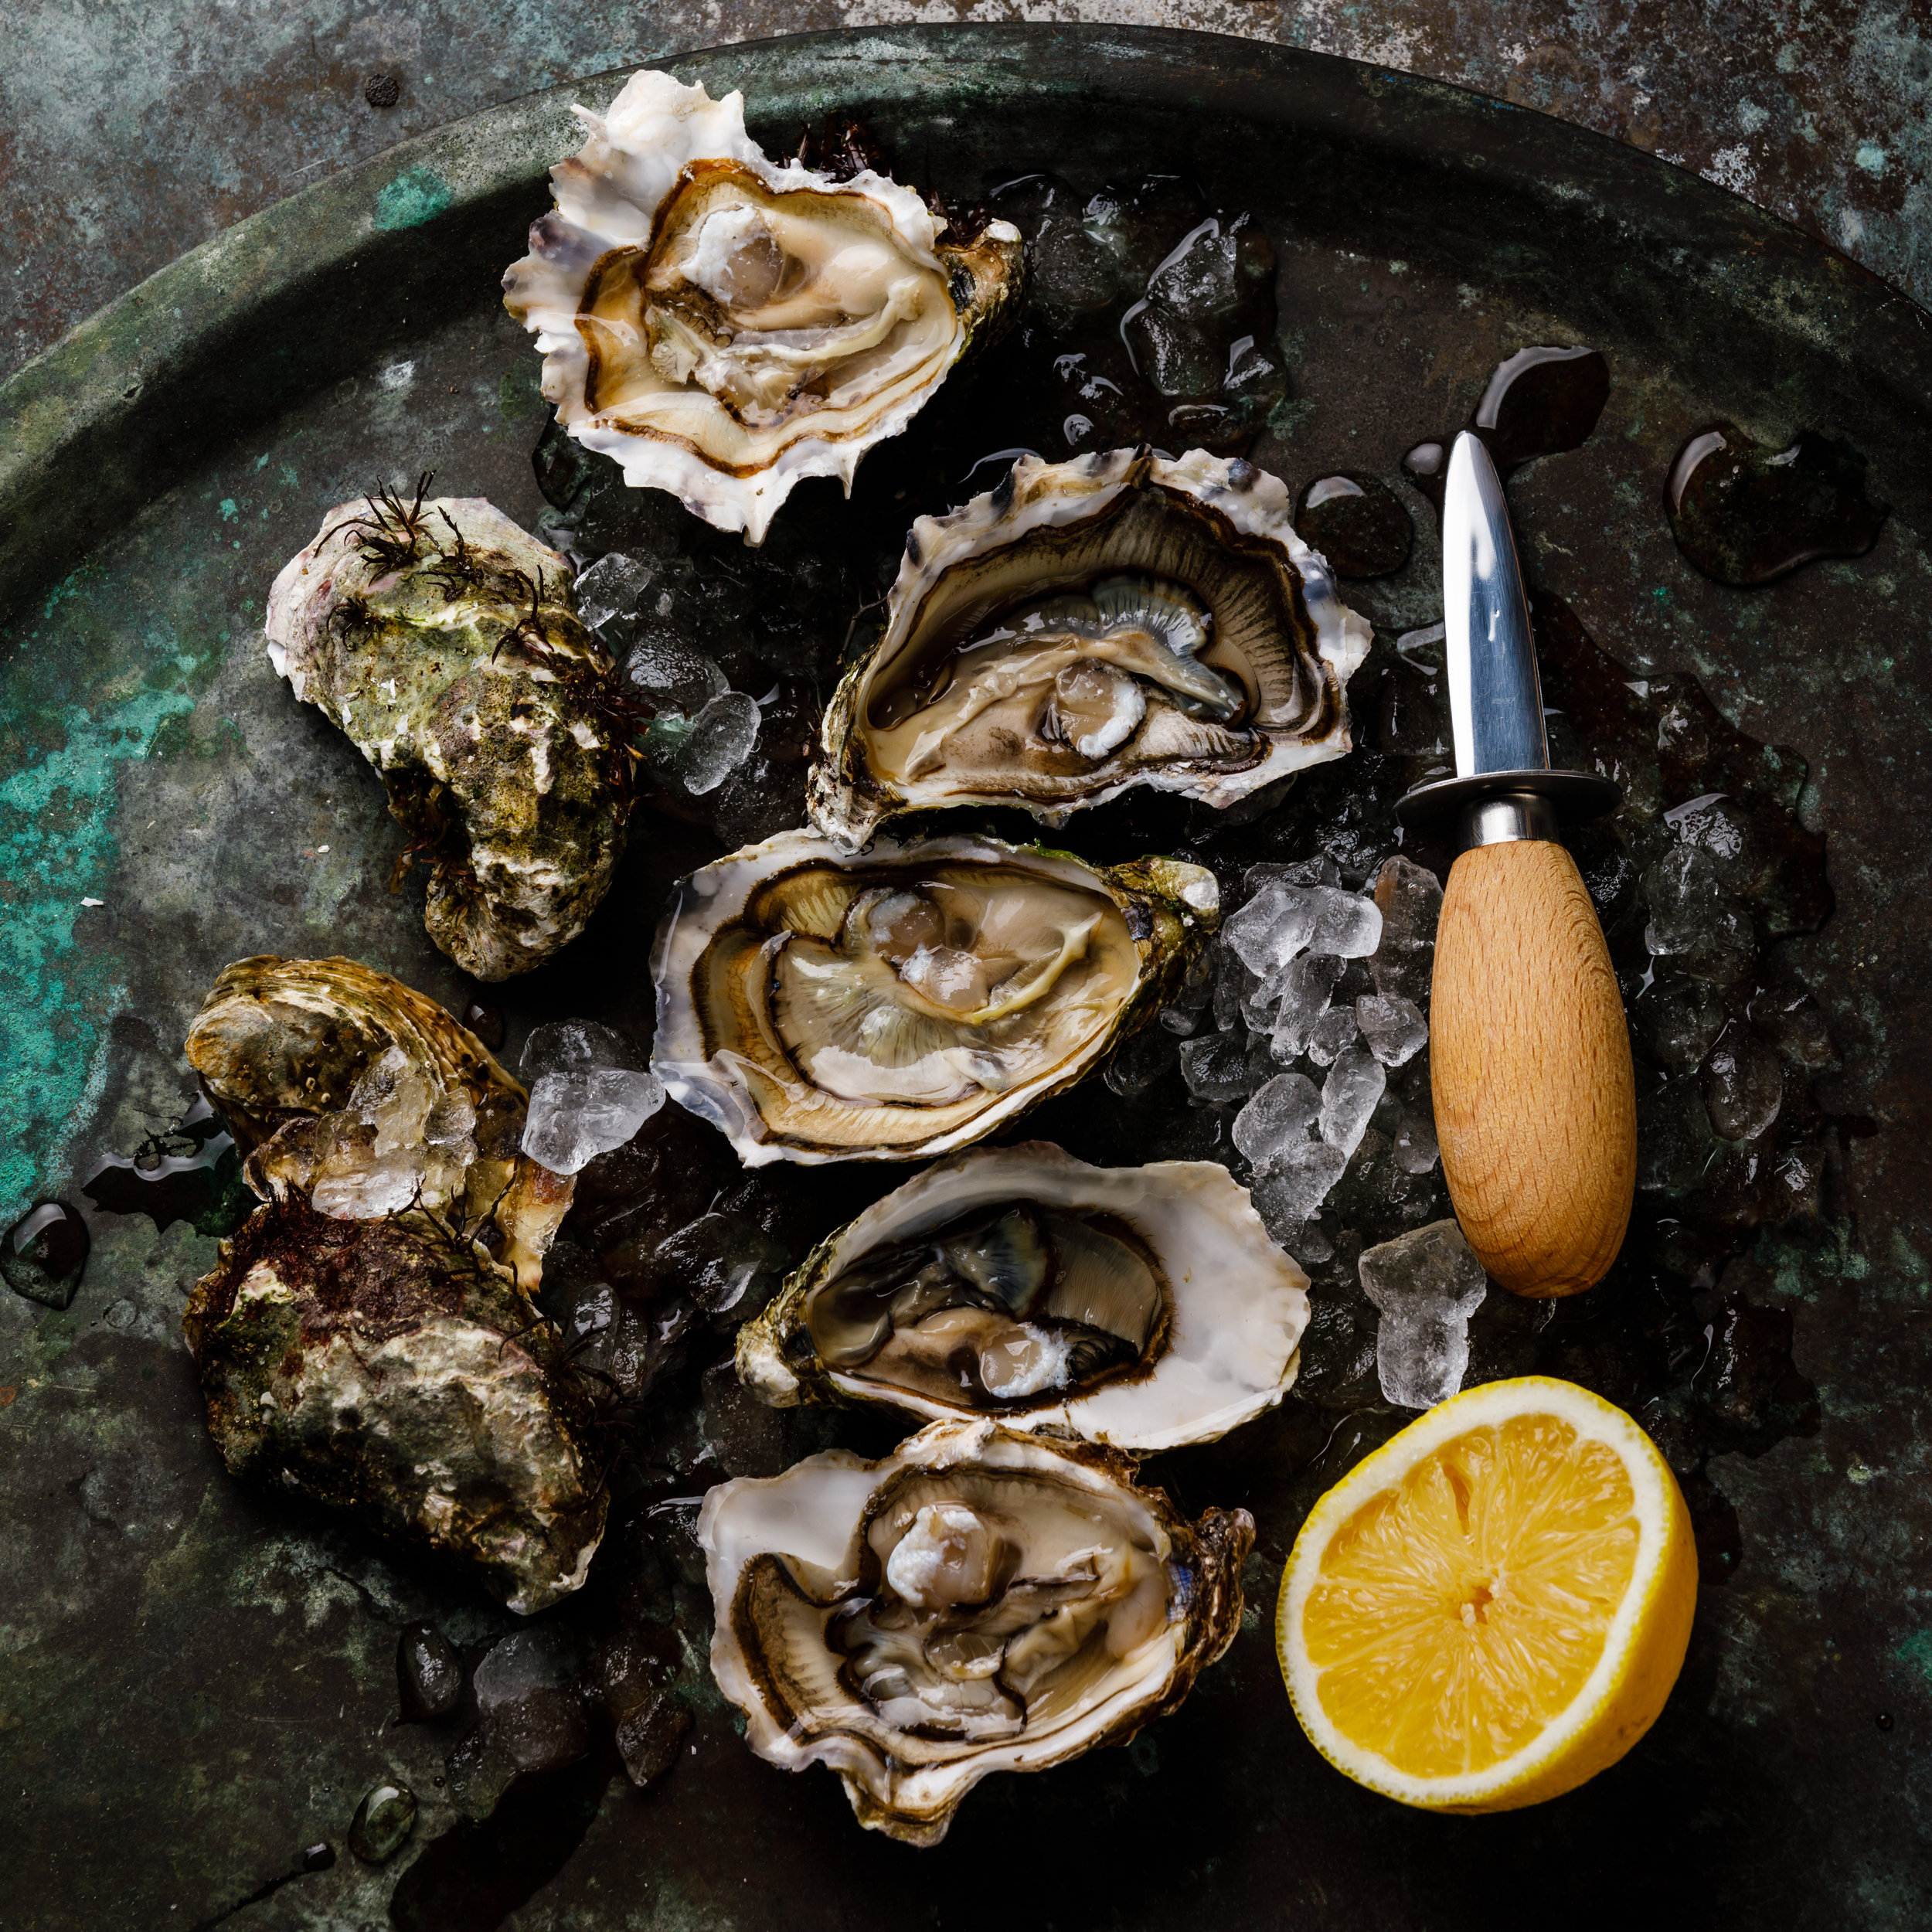 The Oyster -